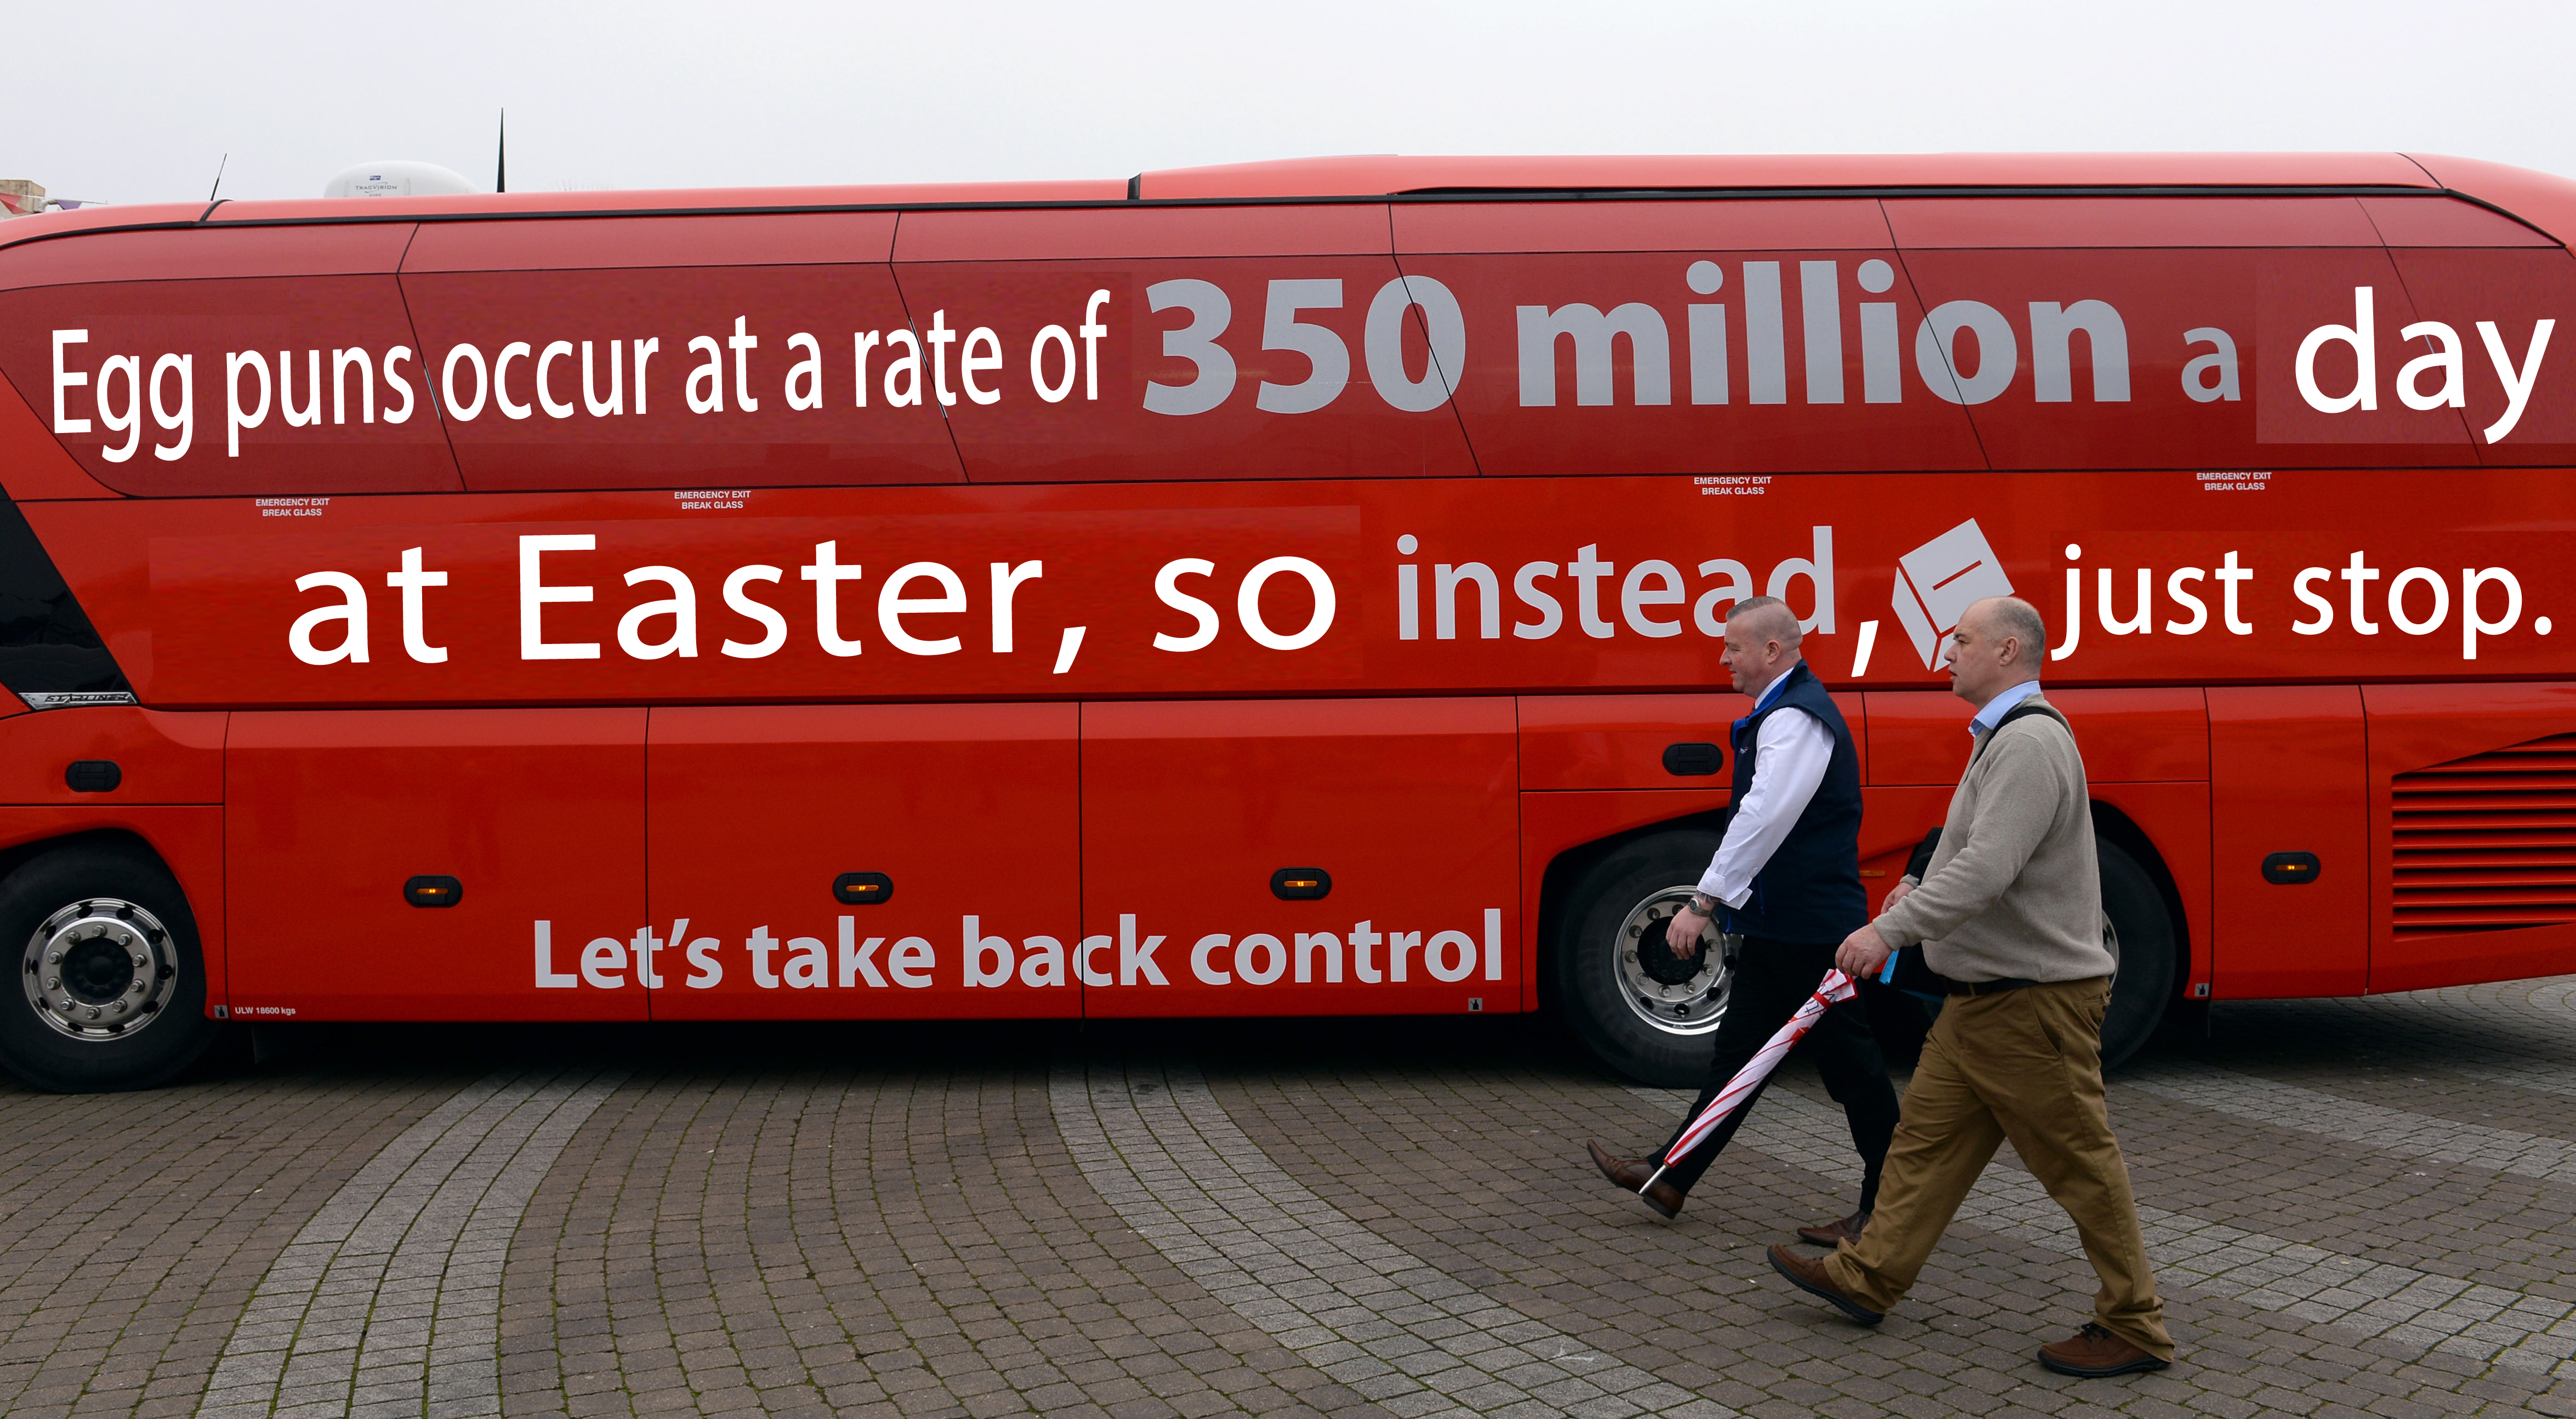 The Brexit bus with a new slogan